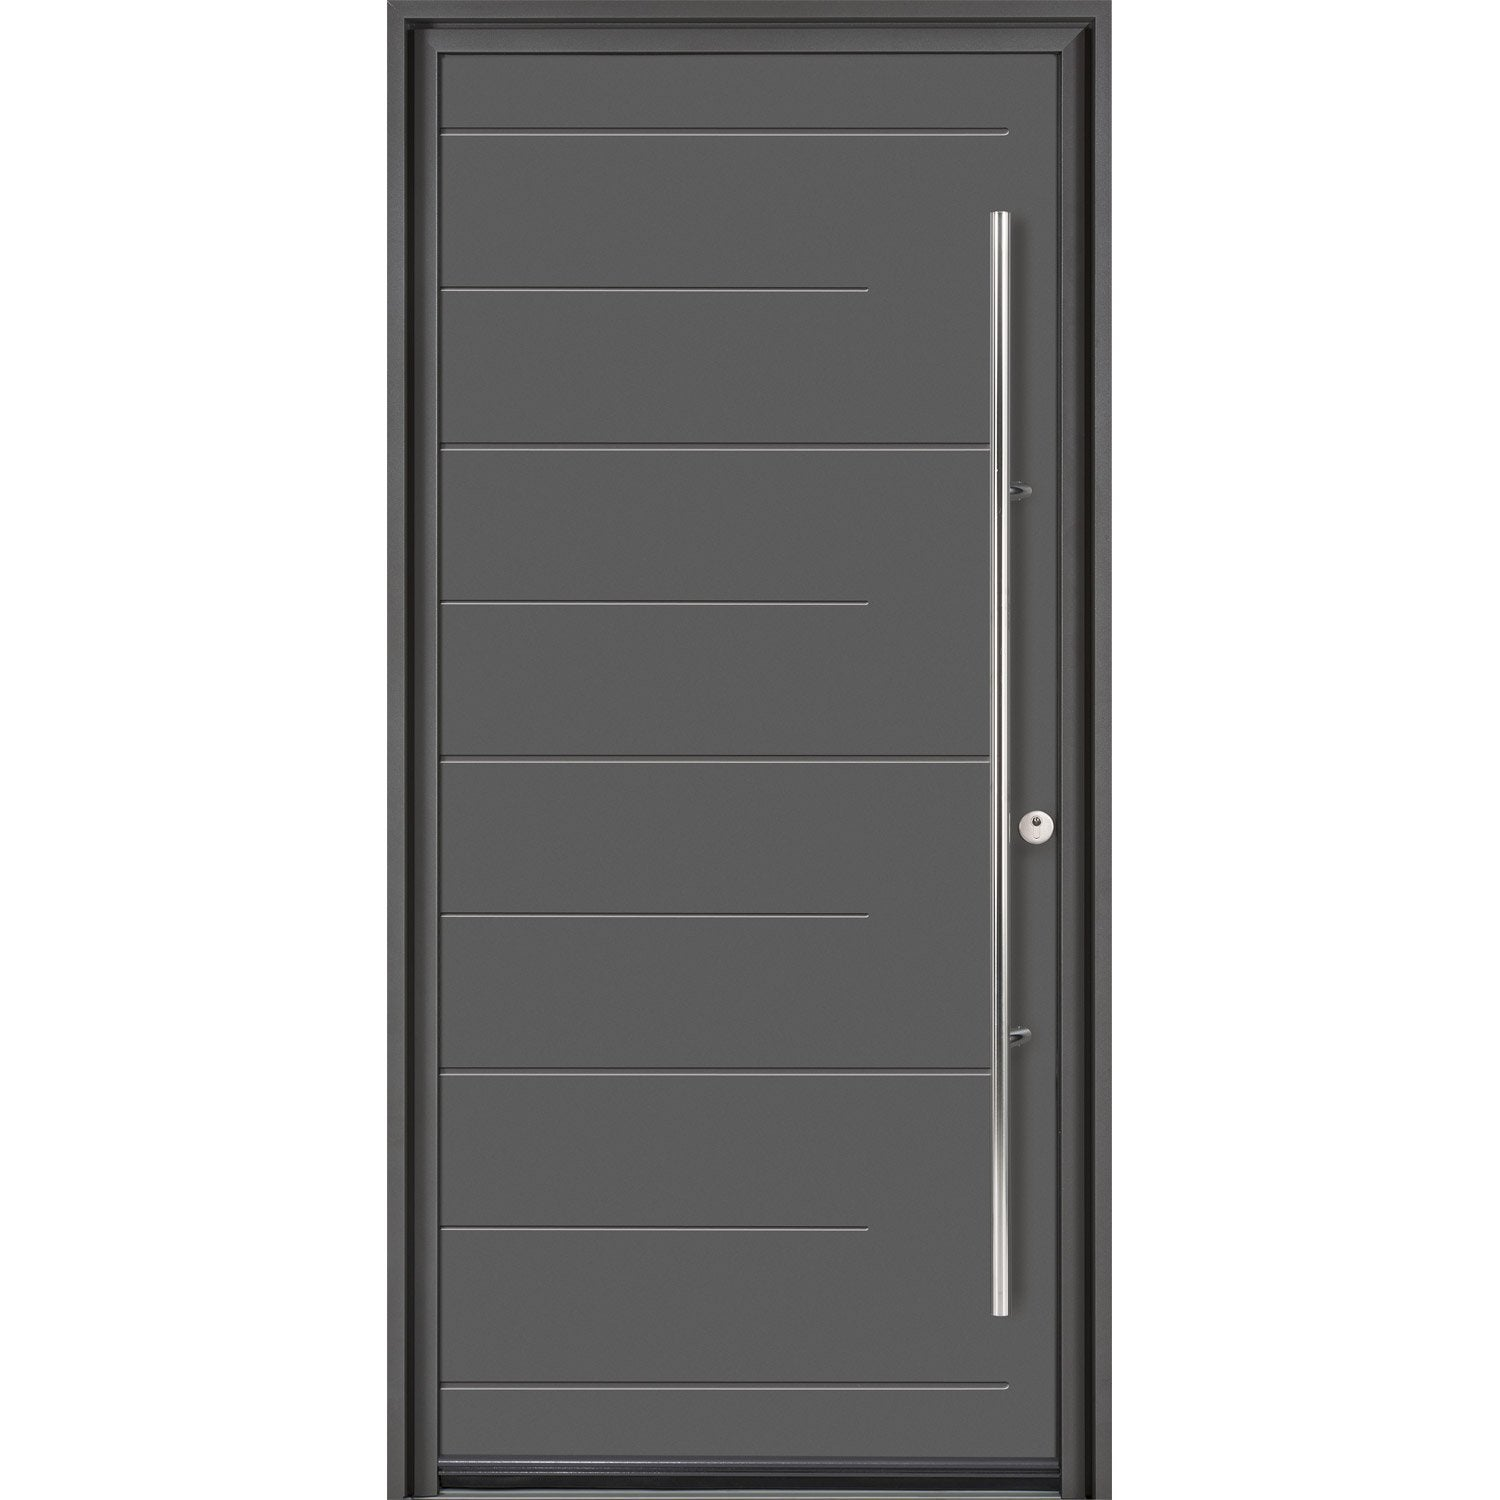 volet roulant pour porte d 39 entree castorama. Black Bedroom Furniture Sets. Home Design Ideas